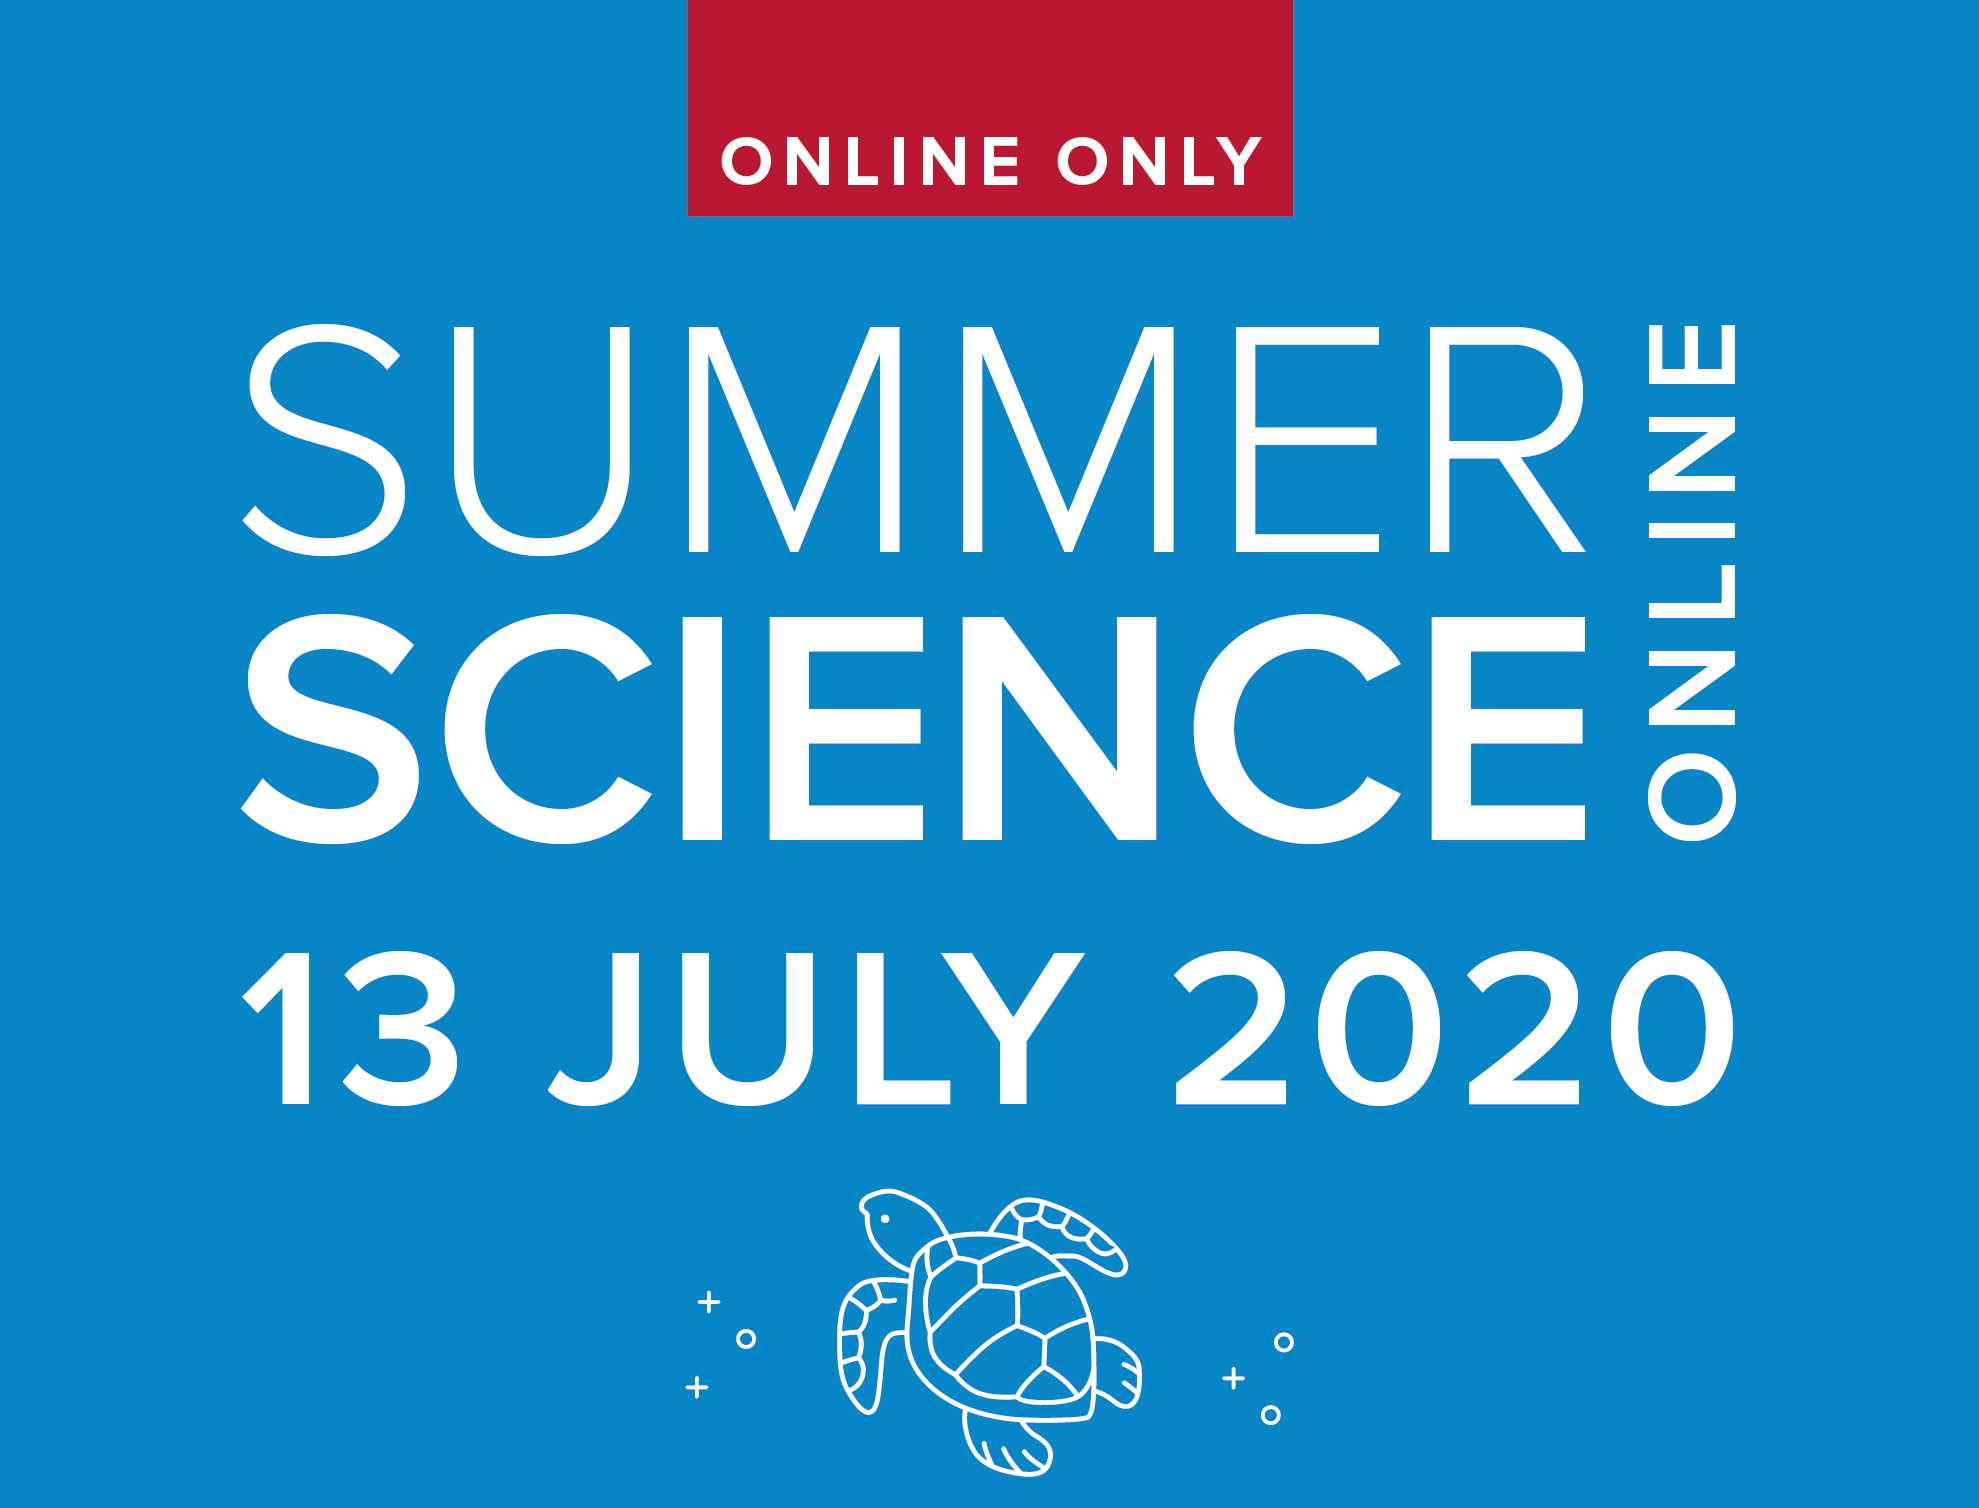 Summer Science Online 13 July 2020